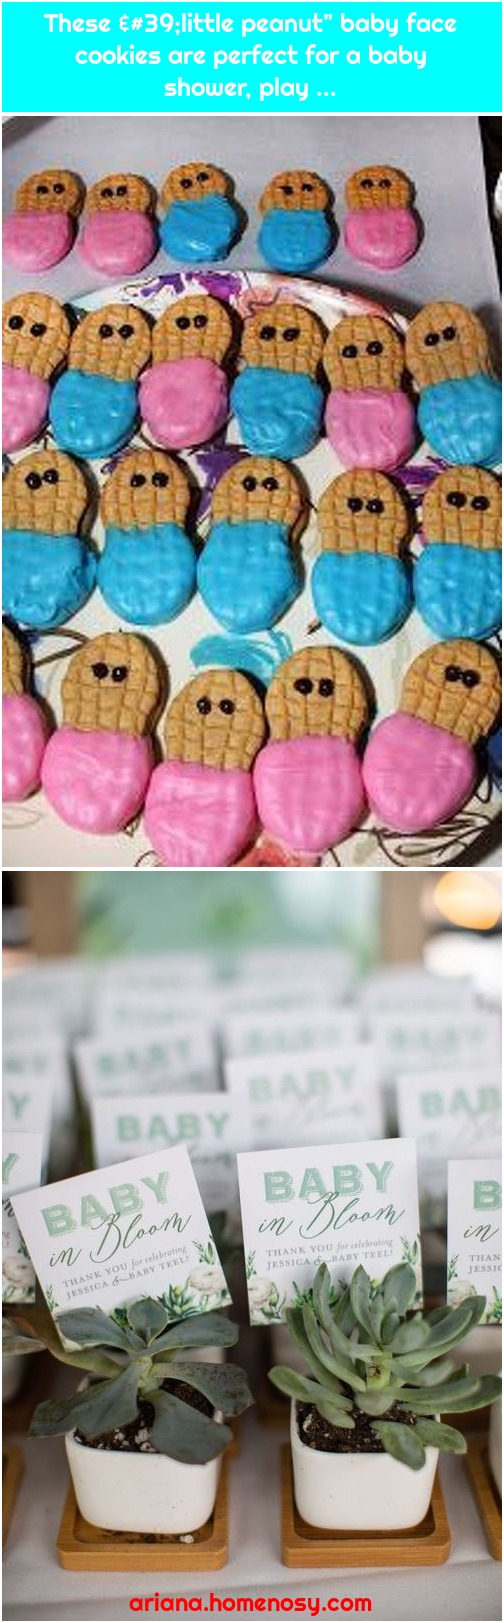 """These 'little peanut"""" baby face cookies are perfect for a baby shower, play ..."""